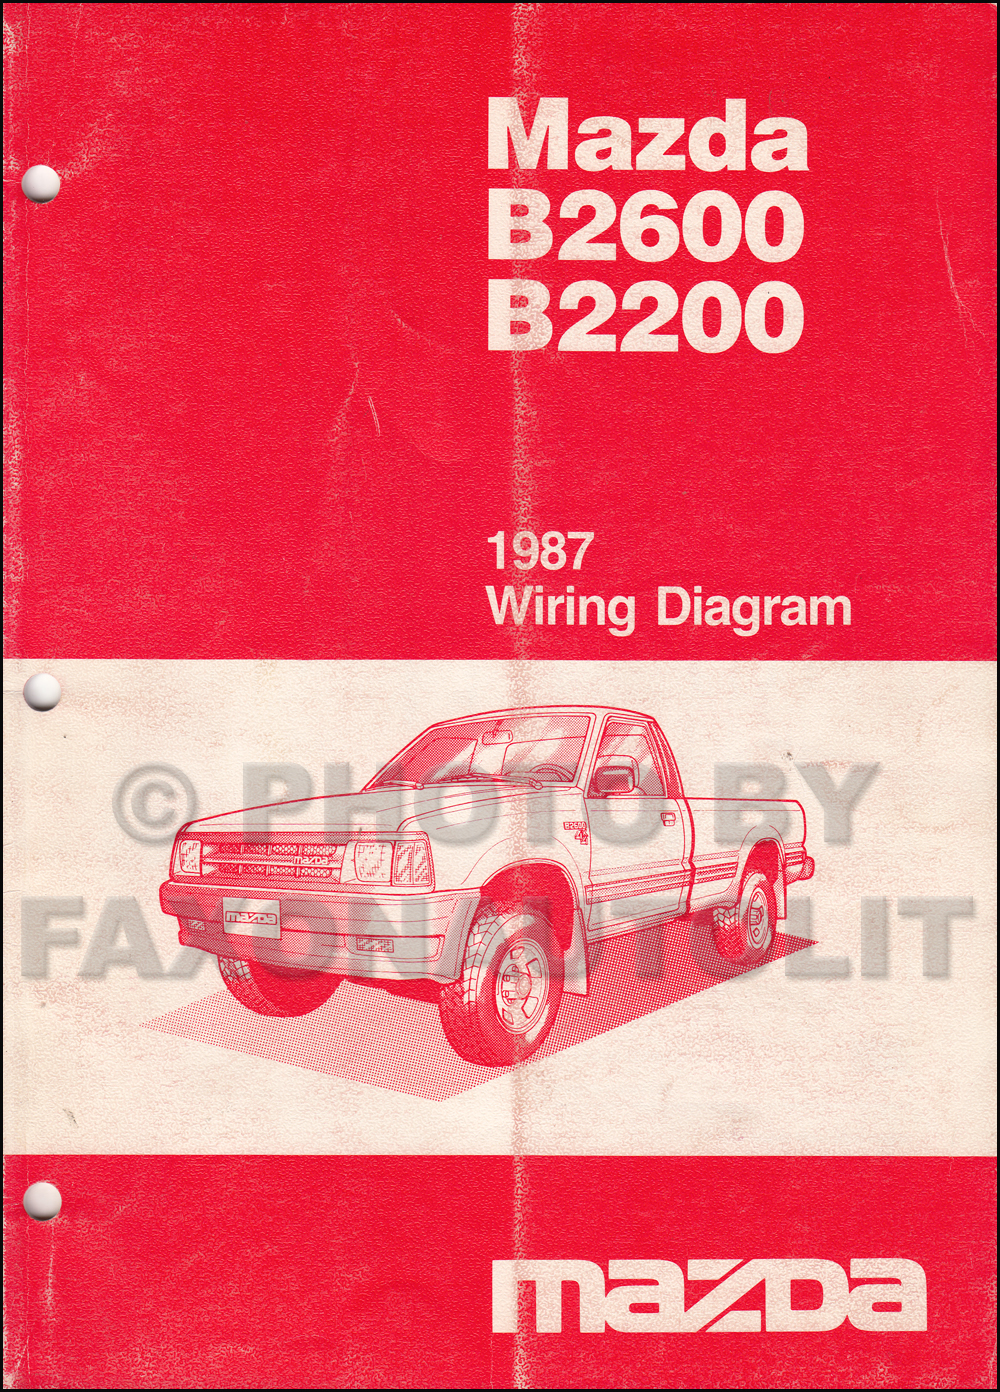 1987 Mazda B2200 Wiring Diagram All Data Toyota Mr2 B2000 Library B2600 Pickup Truck